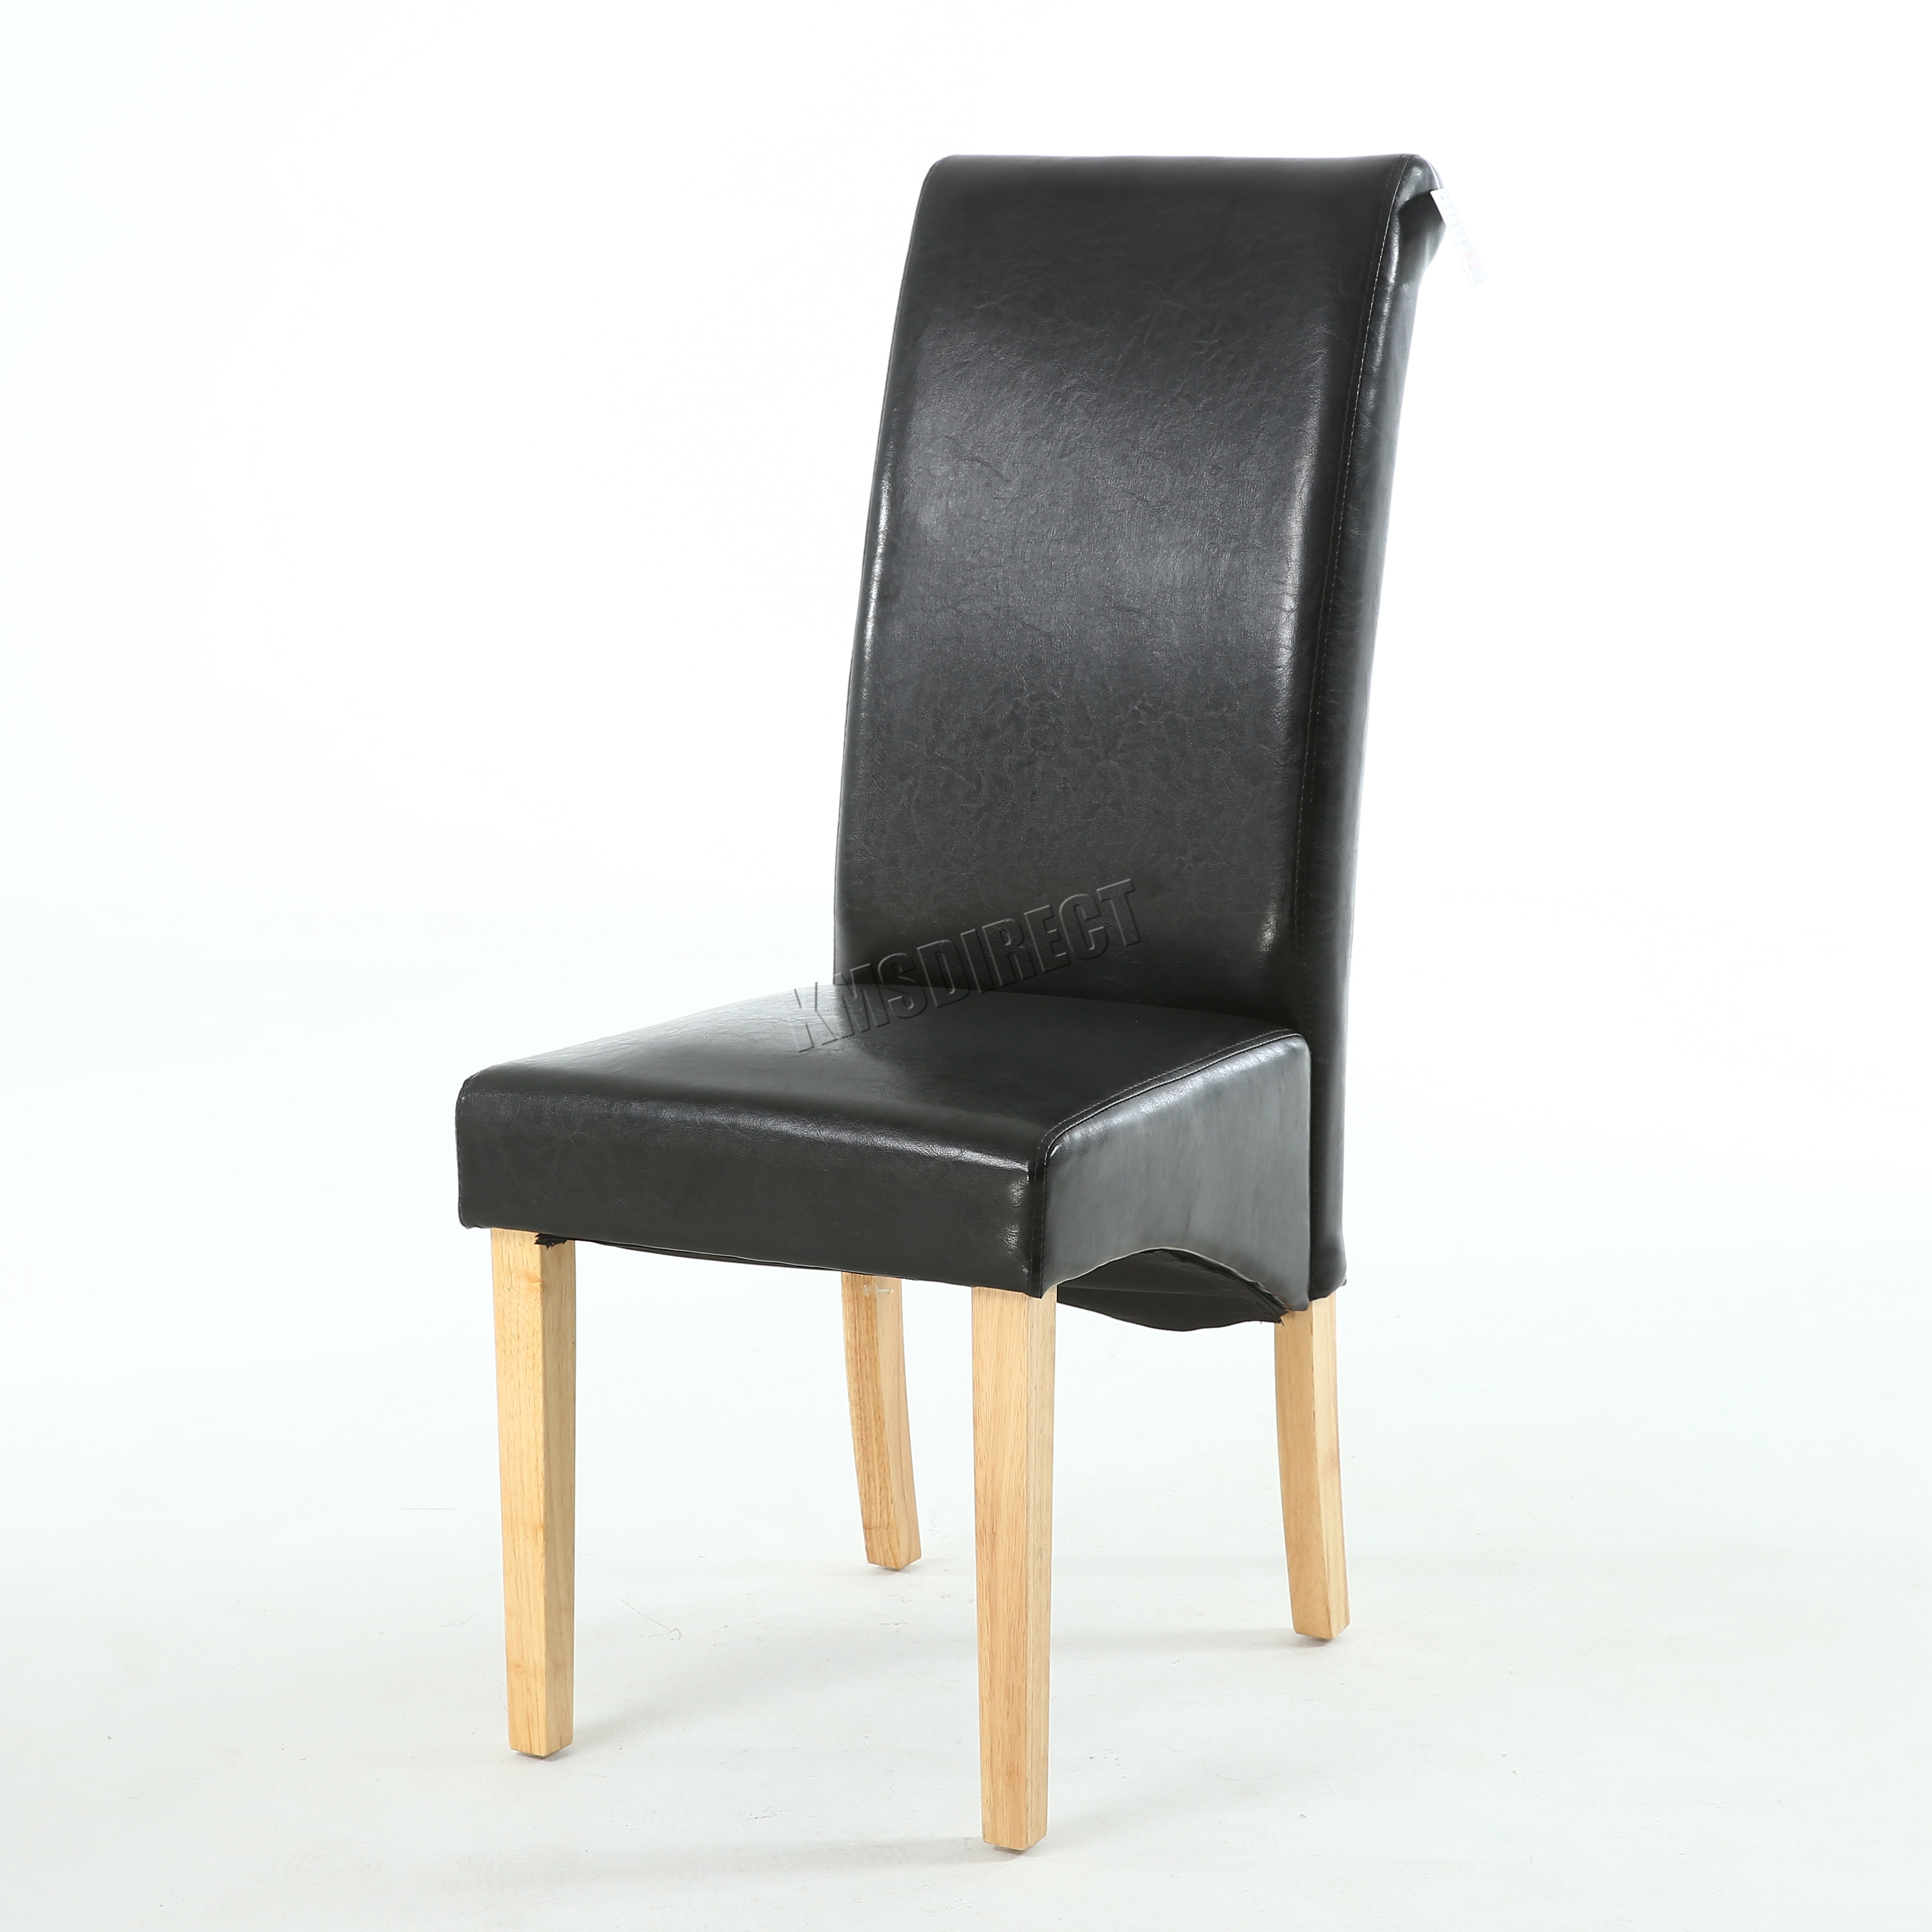 about new black faux leather dining chairs roll top scroll high back